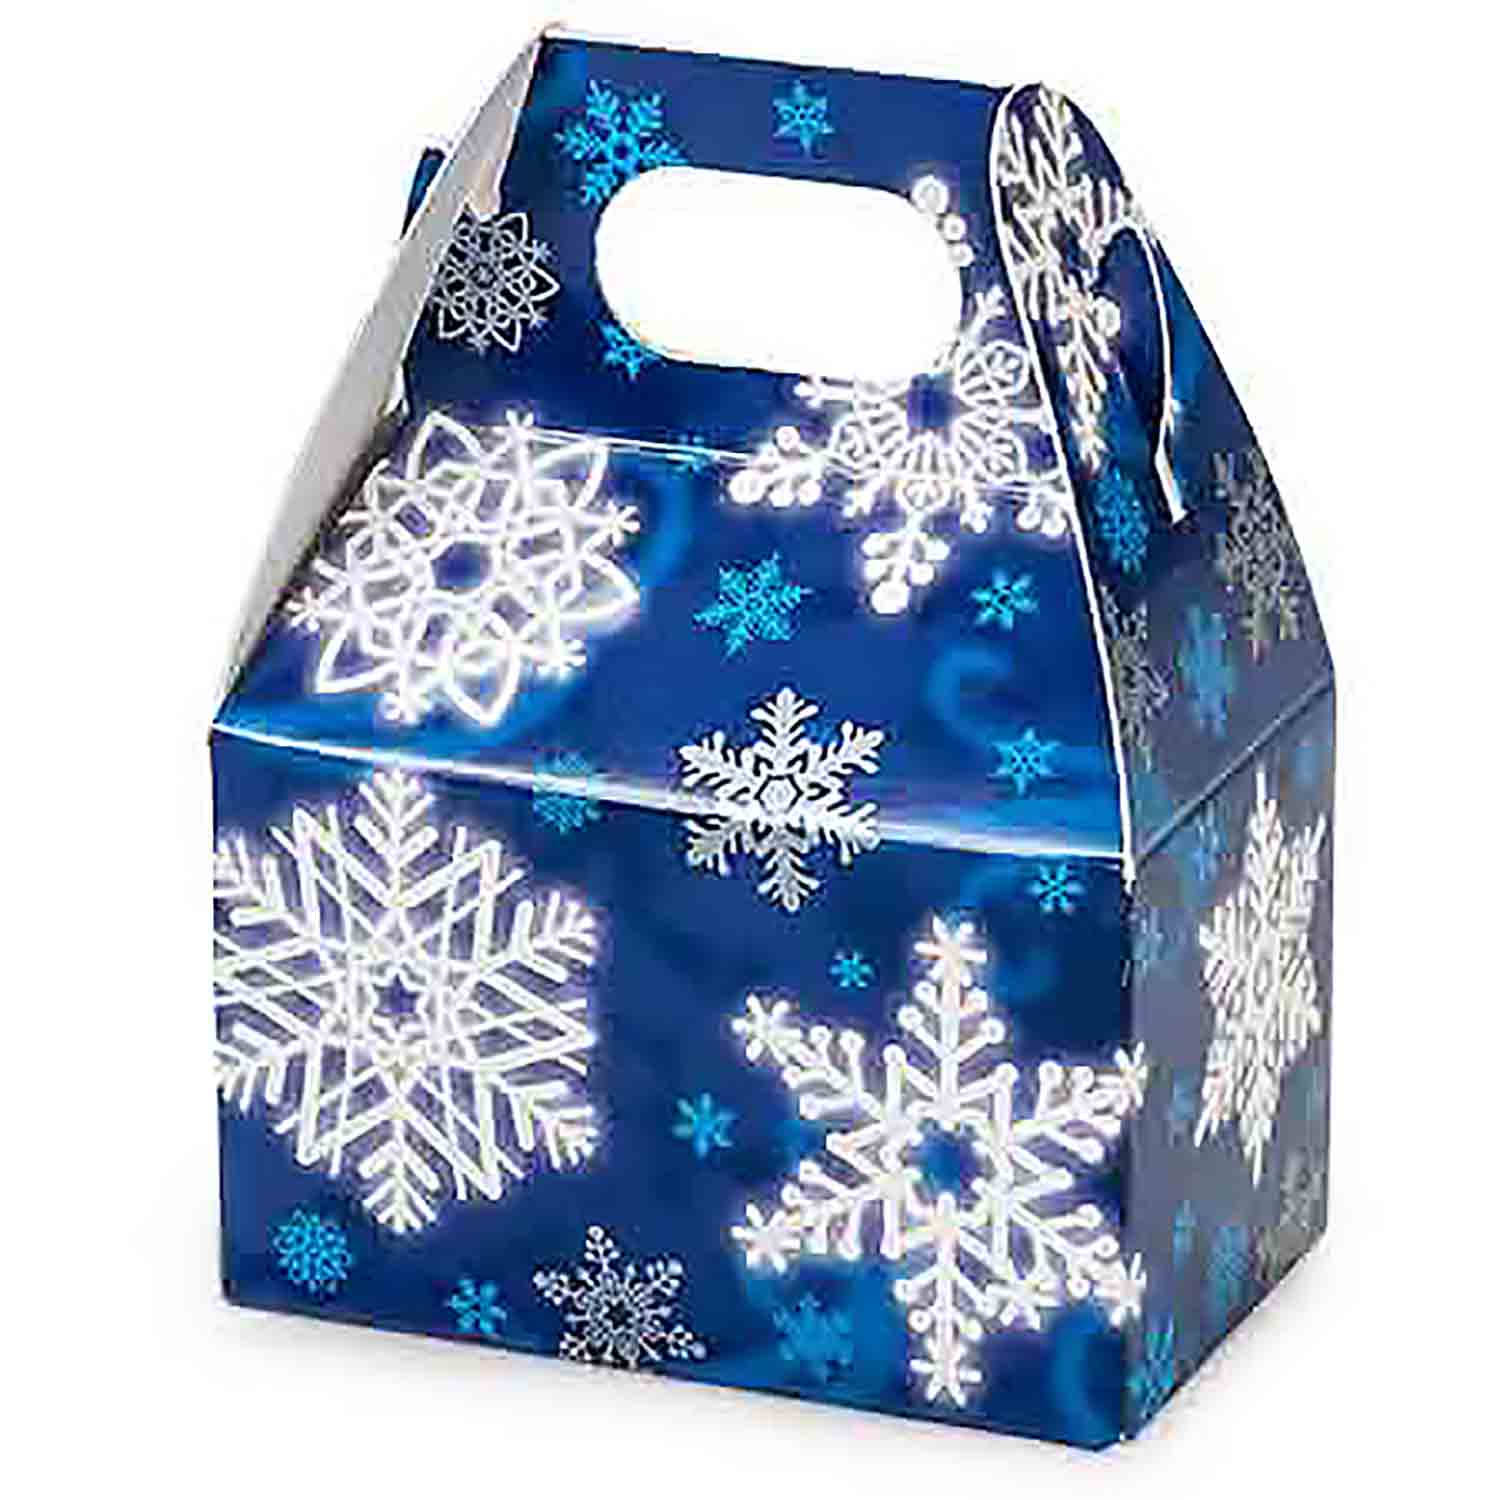 1/2 lb. Blue Snowflake Mini Treat Box